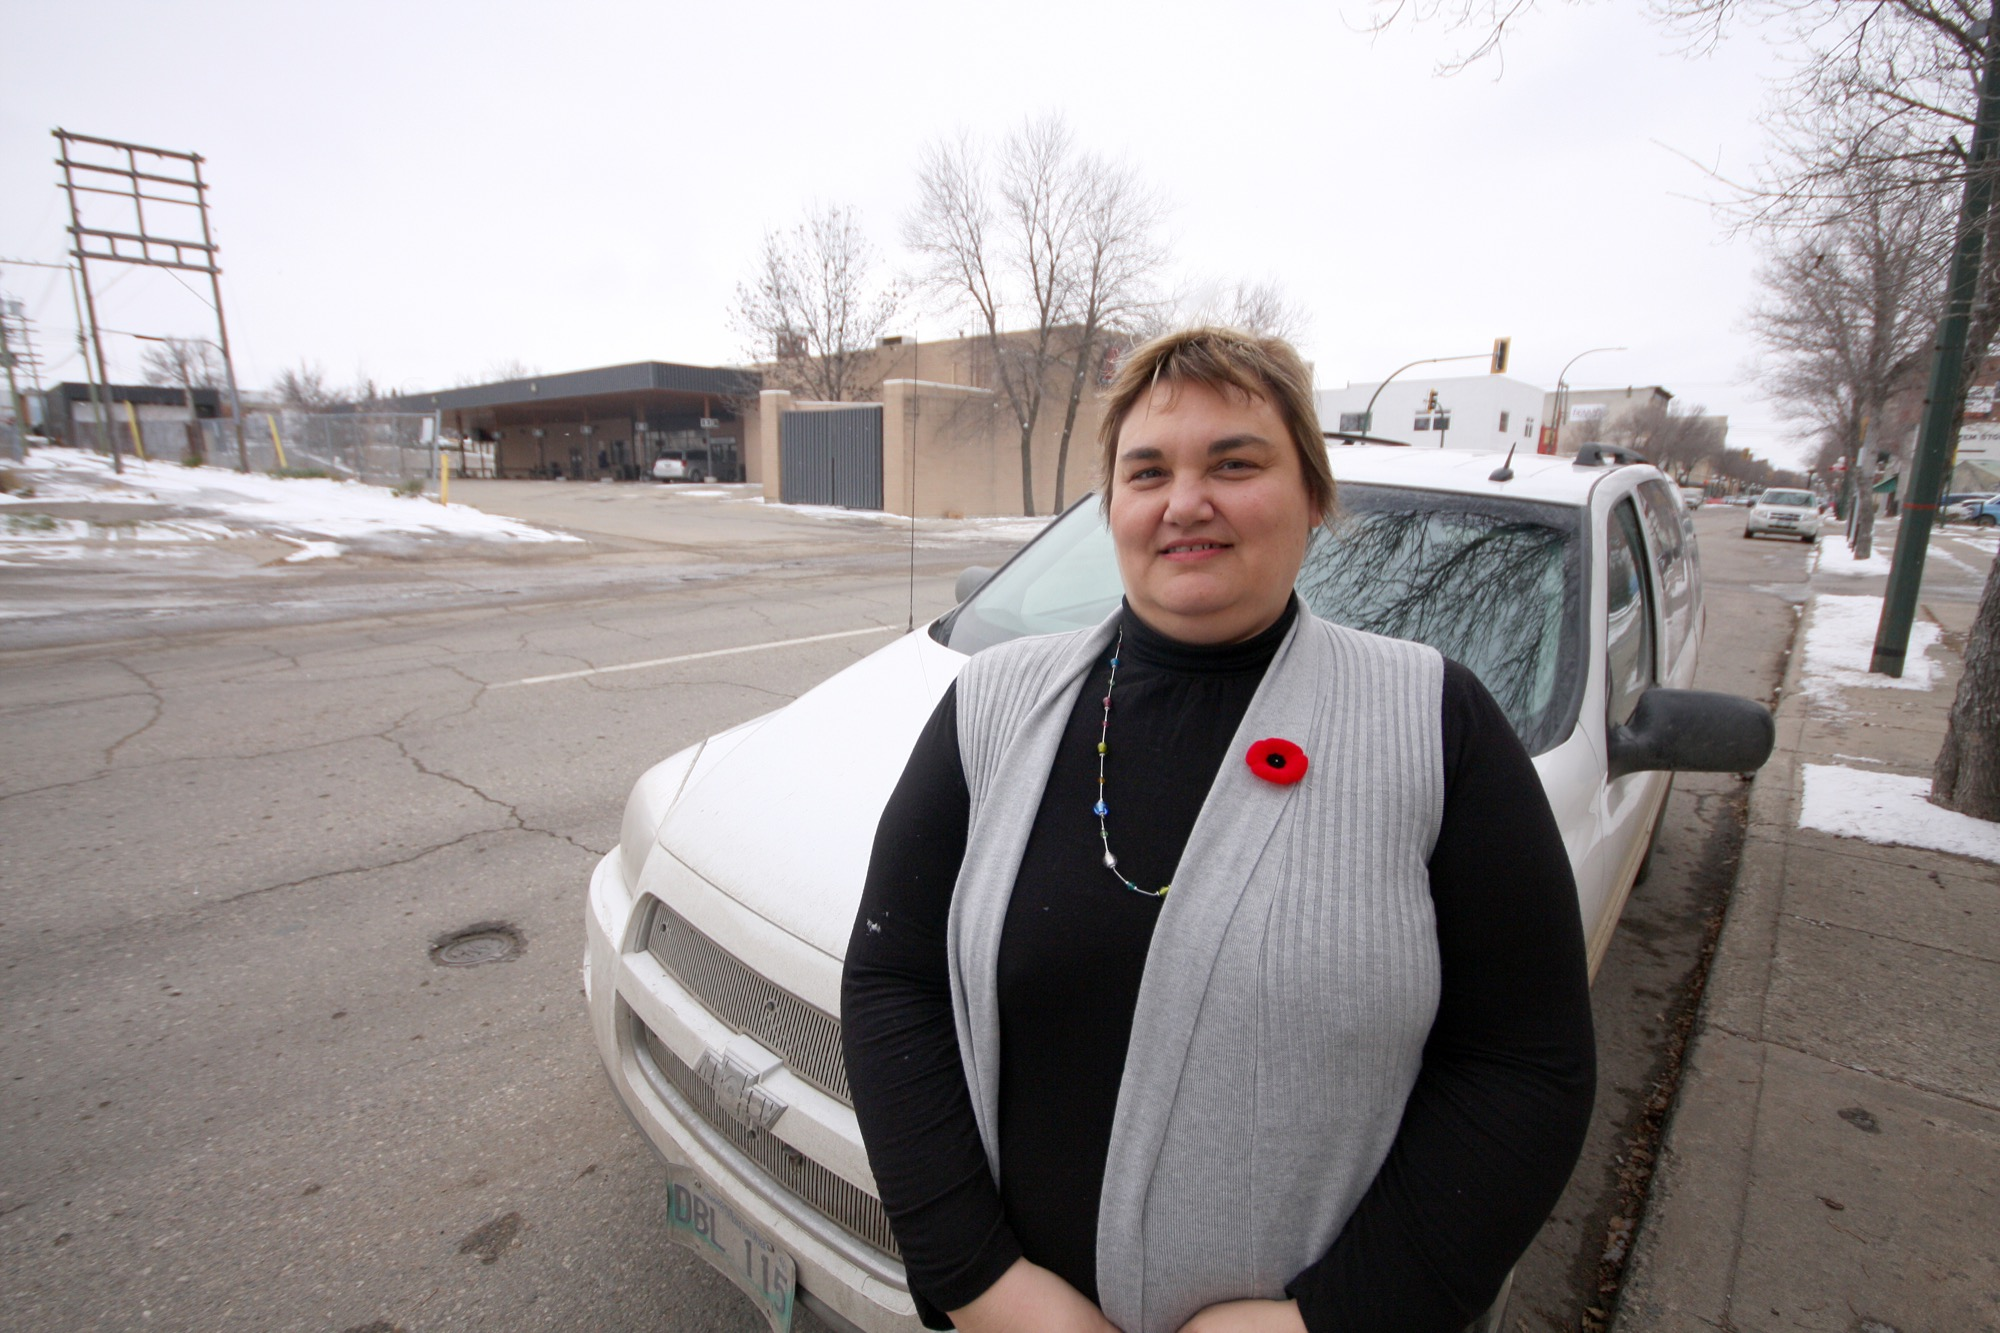 Motorist Stephanie Cruickshanks is voicing her concerns this week after witnessing some delays in the emergency response to an incident south of Boissevain on Oct. 21, which she's afraid might be compounded when the Boissevain EMS station is shut down, as per the provincial government's plan.